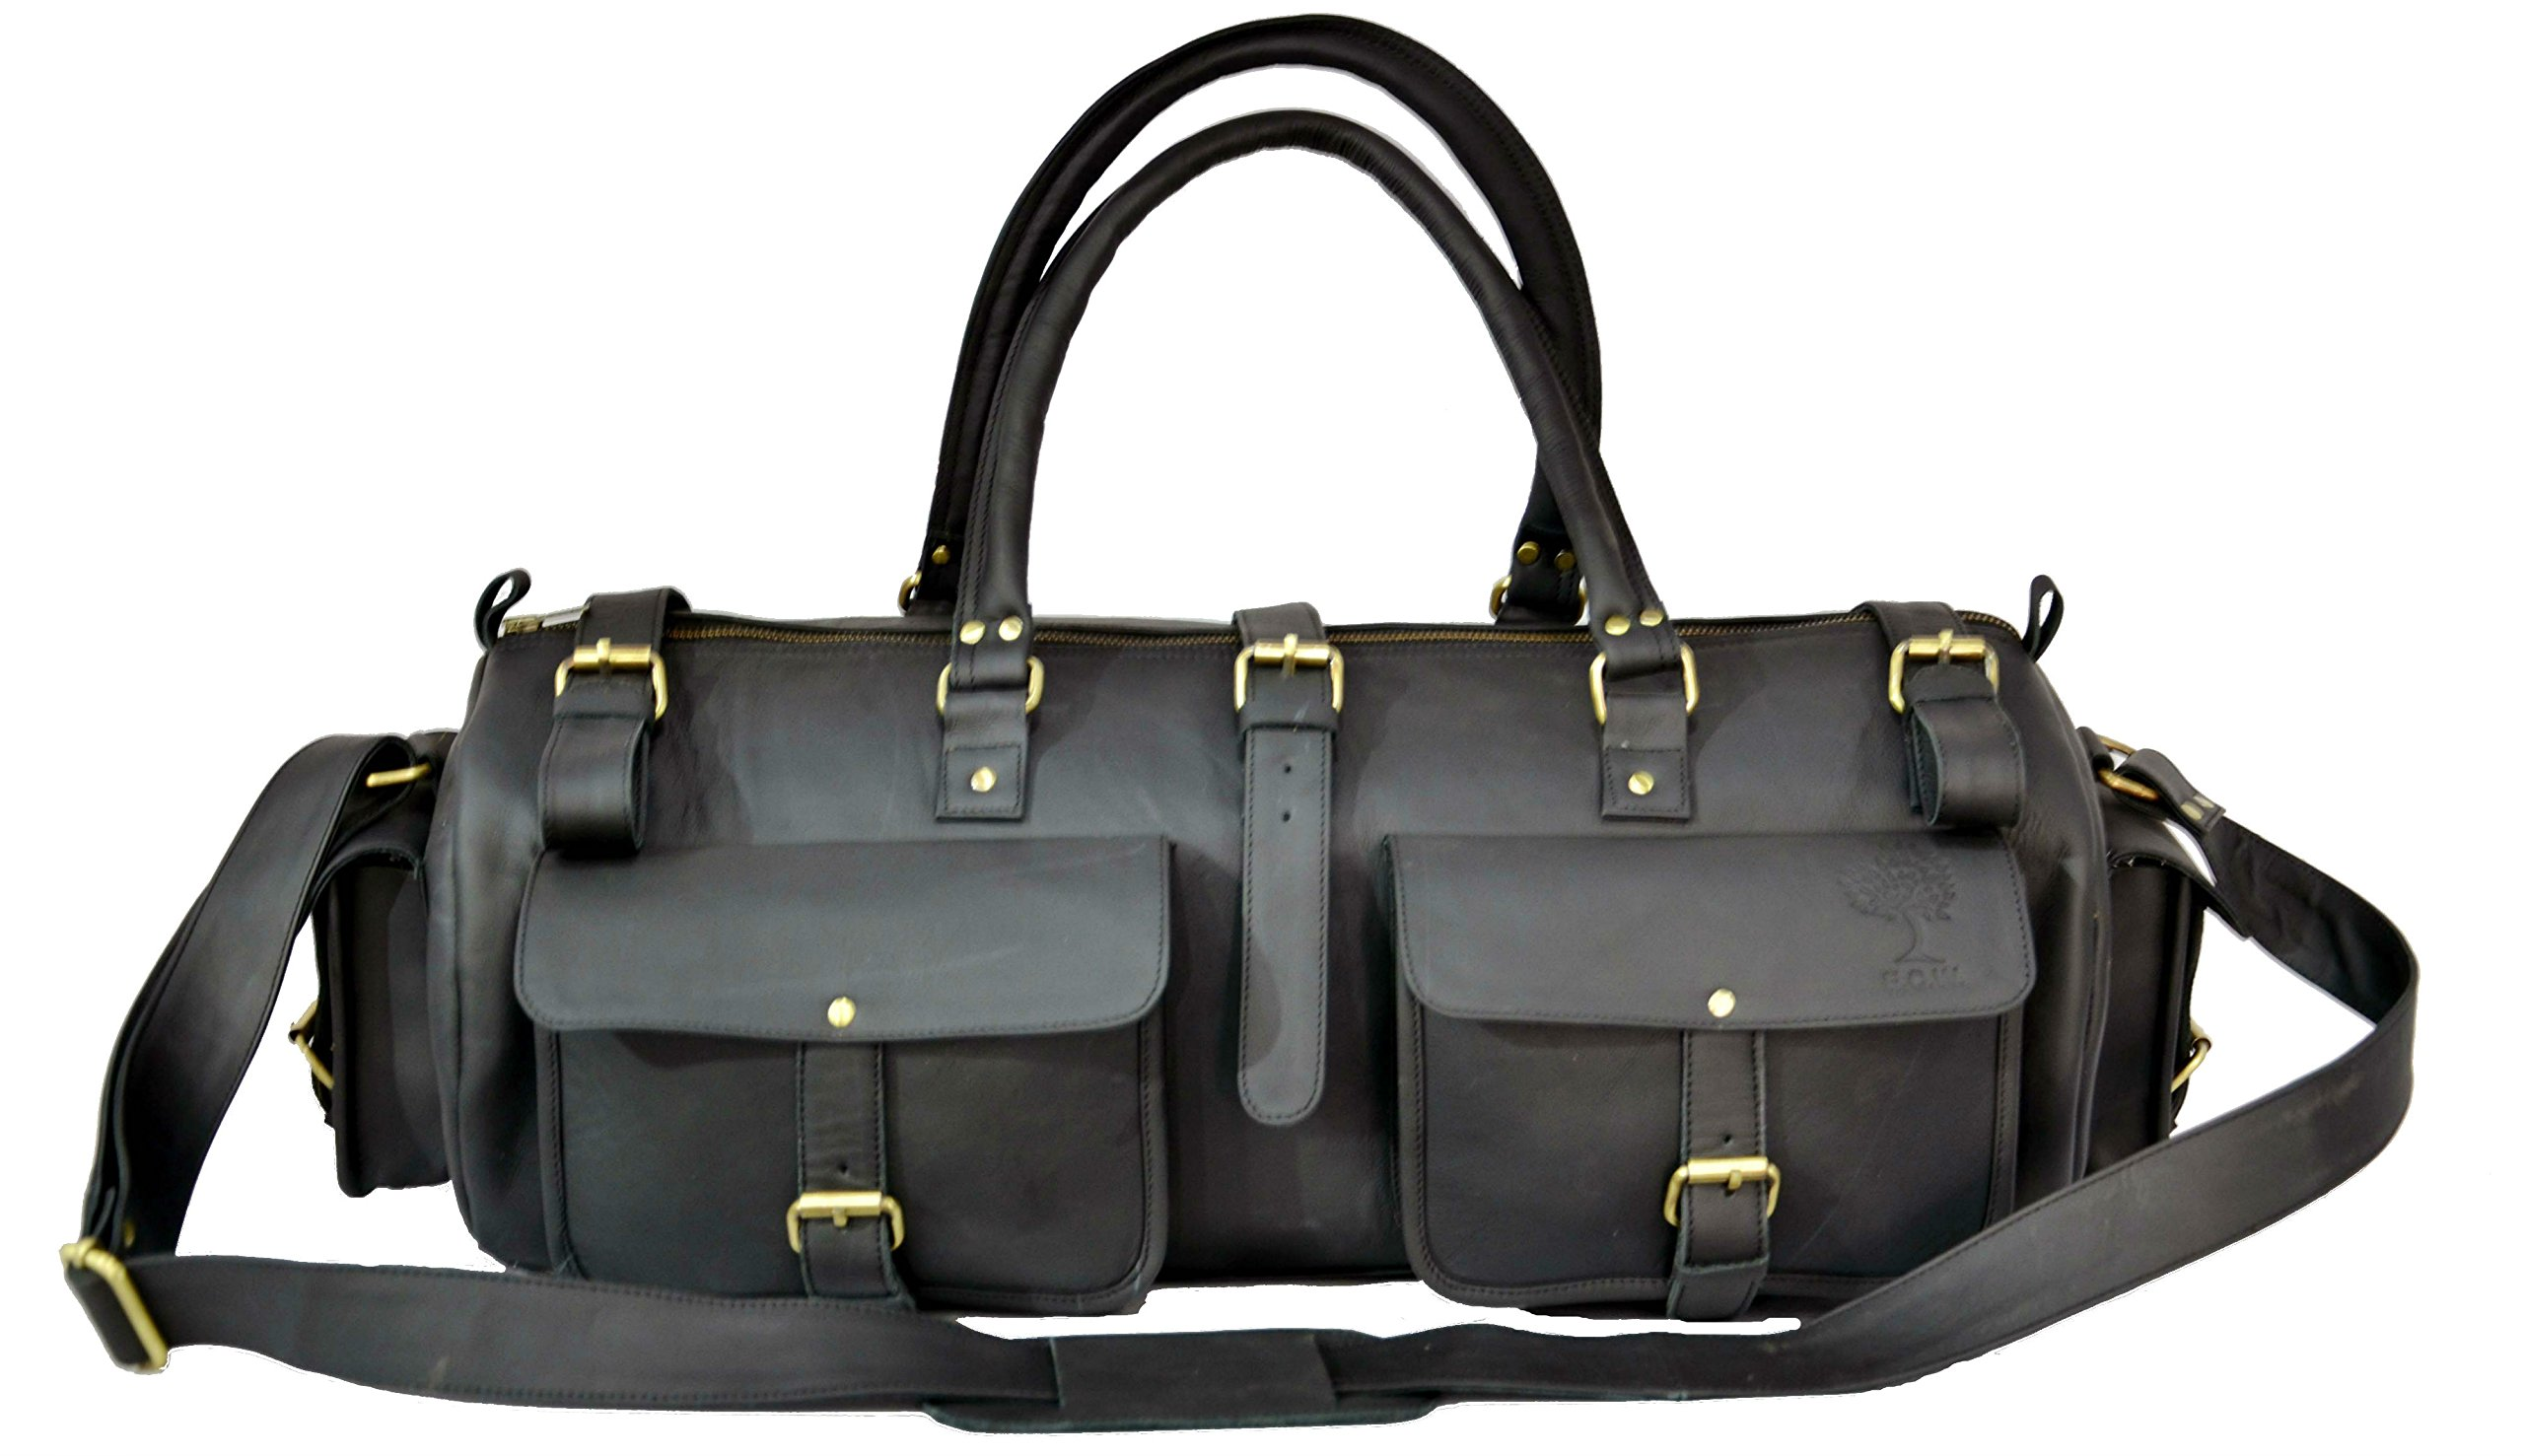 22 Inch Leather Travel Bag Vintage Duffel Men's Gym Cabin Luggage Holdall Check in Cabin Luggage